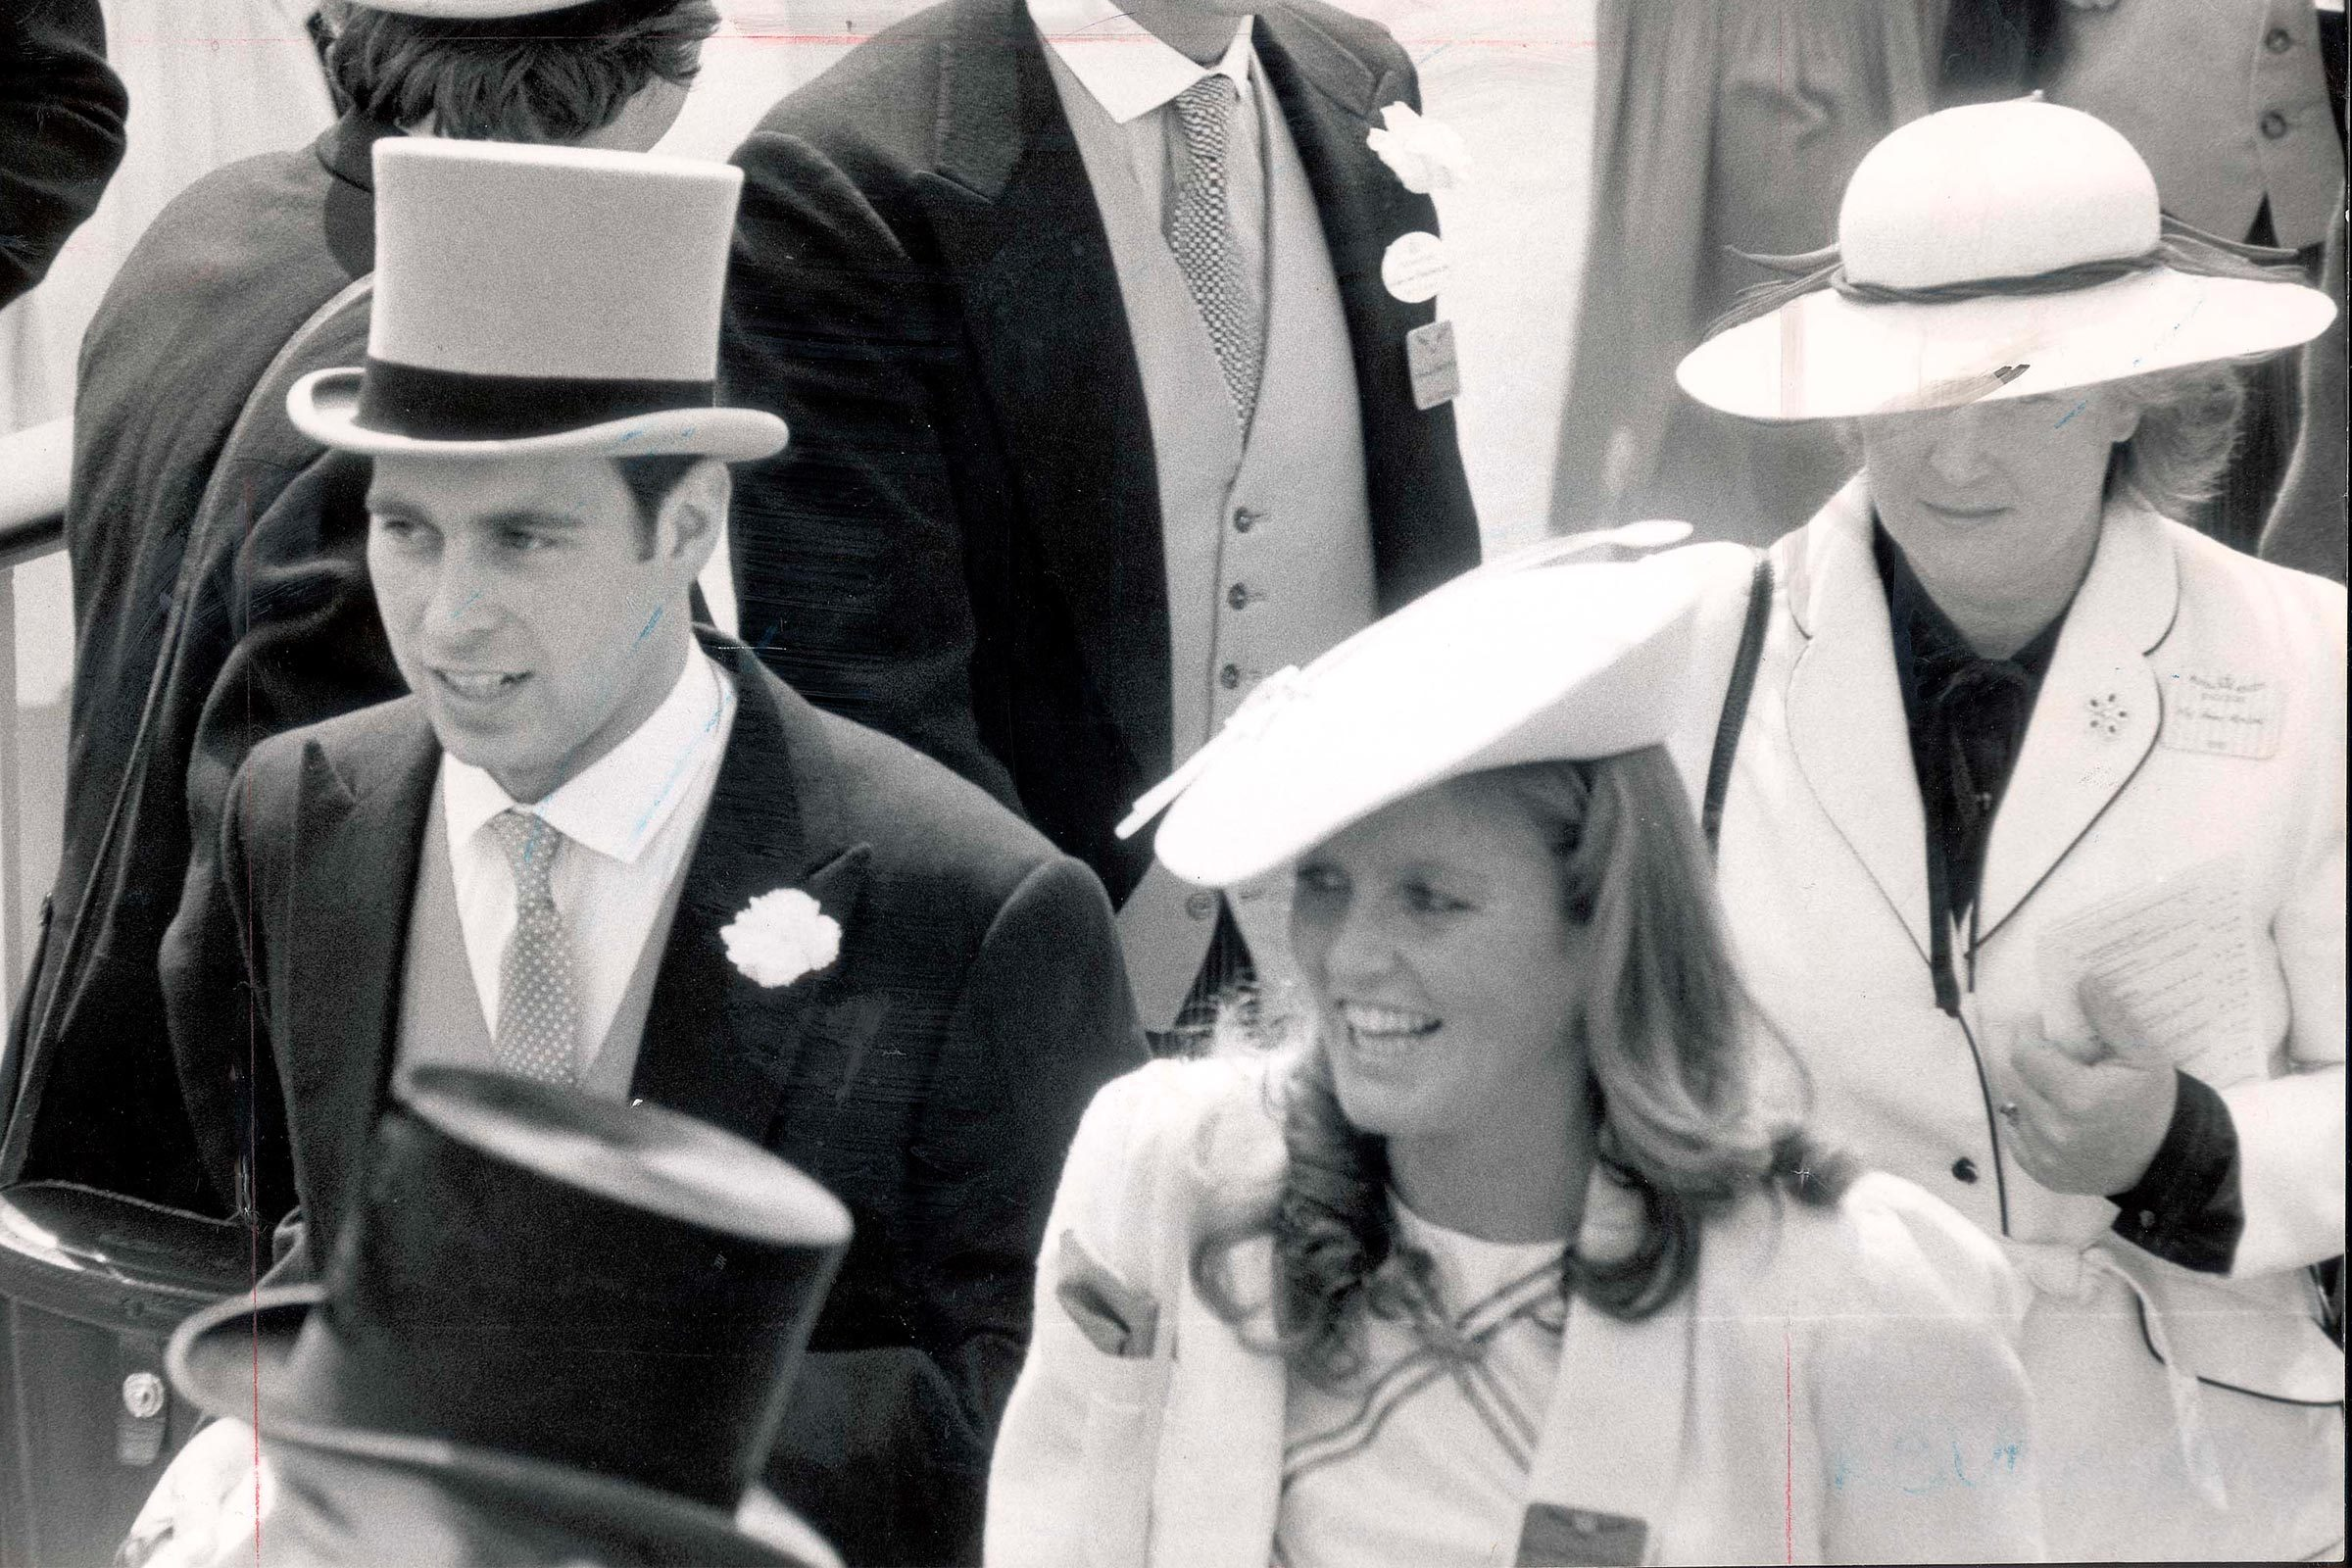 Sarah Ferguson at Royal Ascot 1985